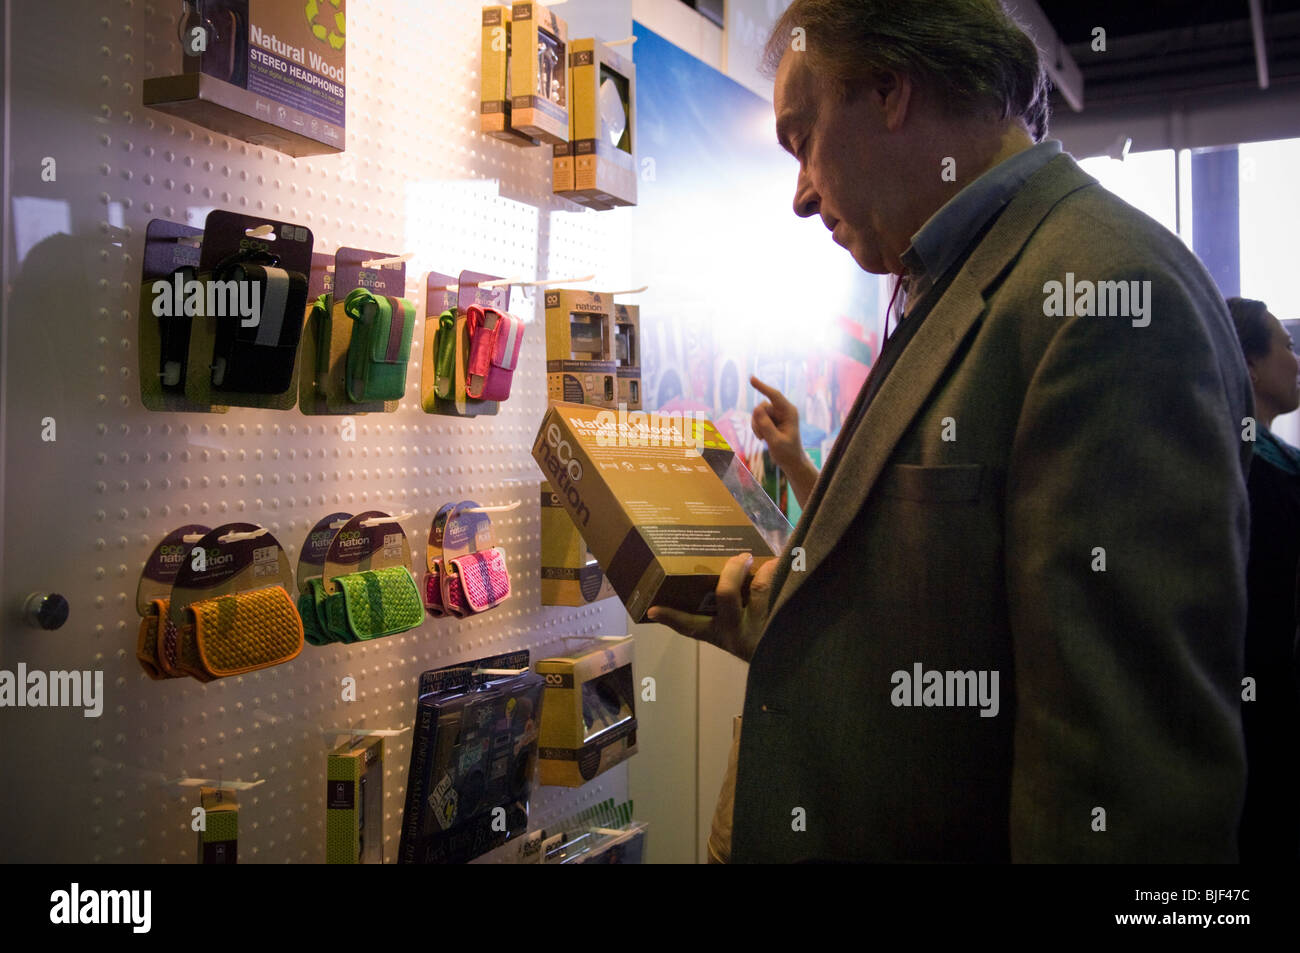 A visitor examines products by Econation at the Go Green Expo held in midtown in New York - Stock Image